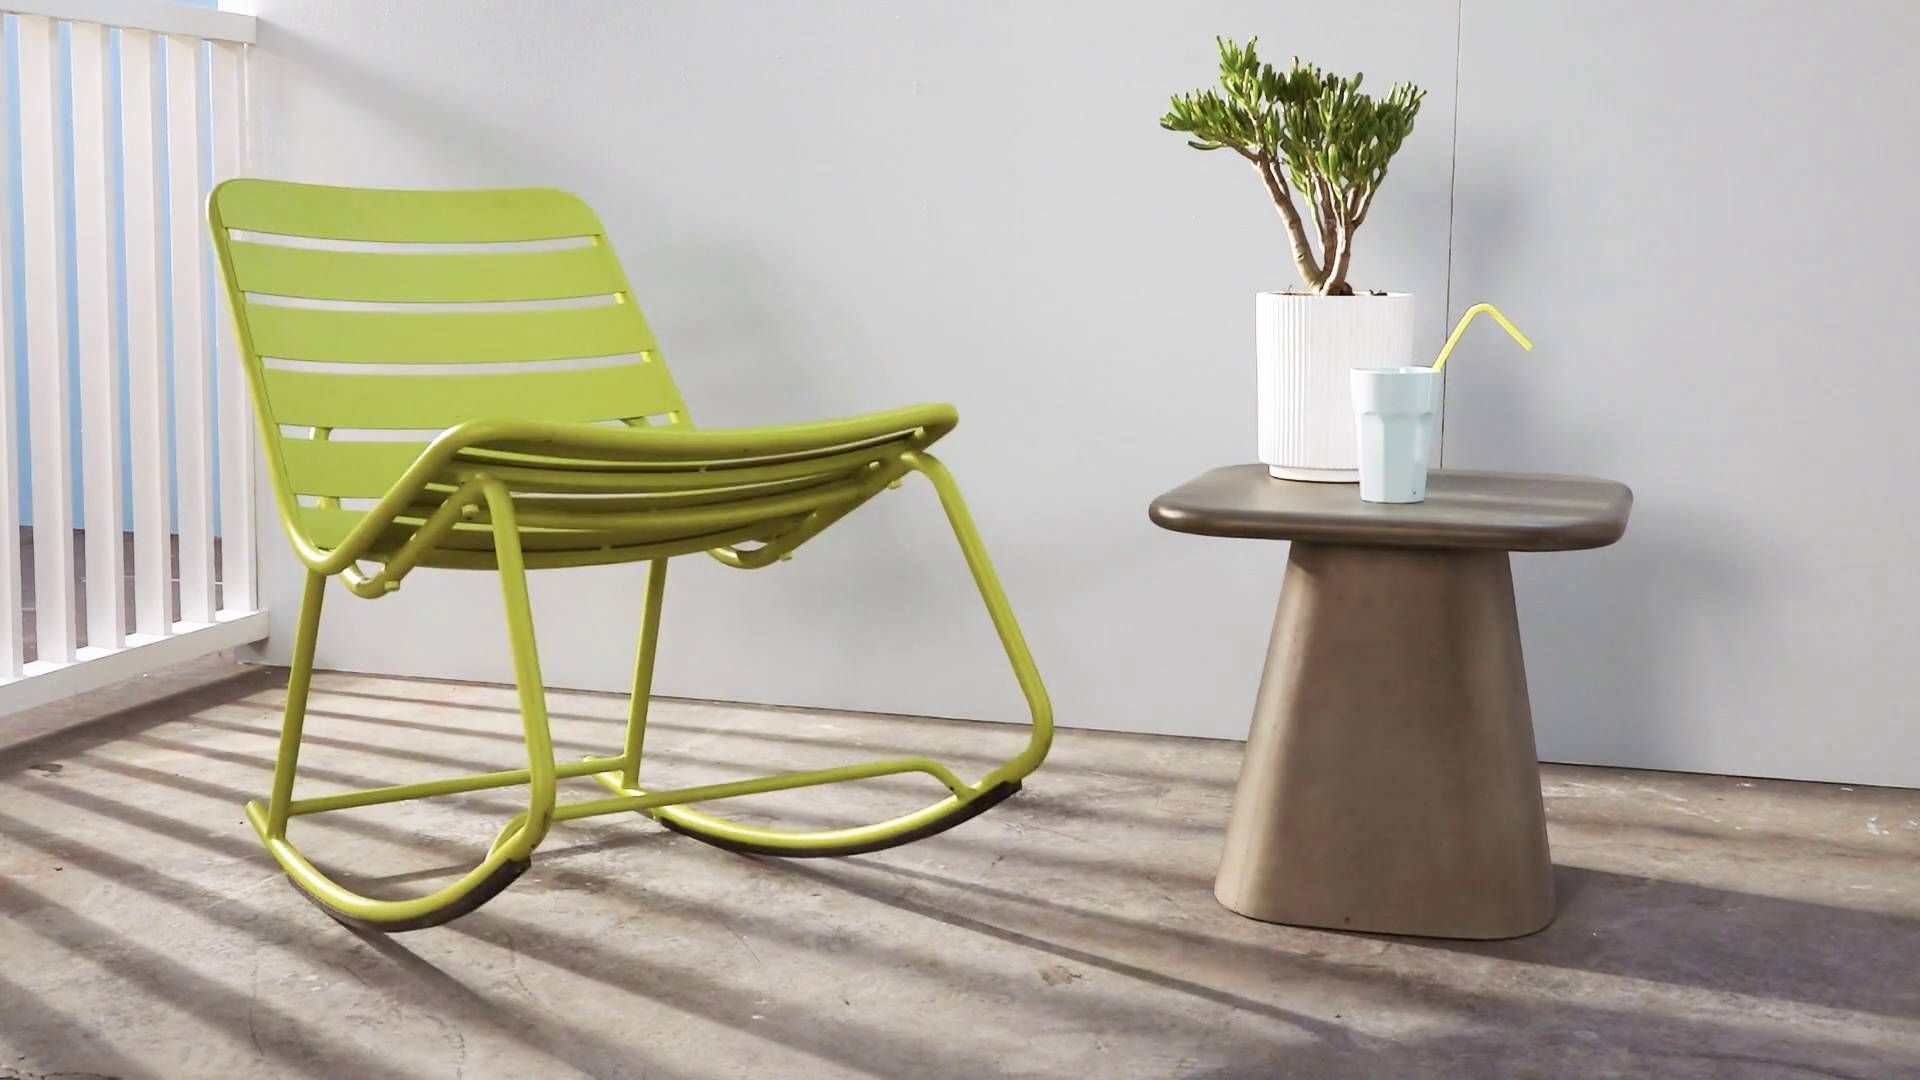 Excellent Made Chartreuse Lounge Chair New House Garden Chairs Squirreltailoven Fun Painted Chair Ideas Images Squirreltailovenorg